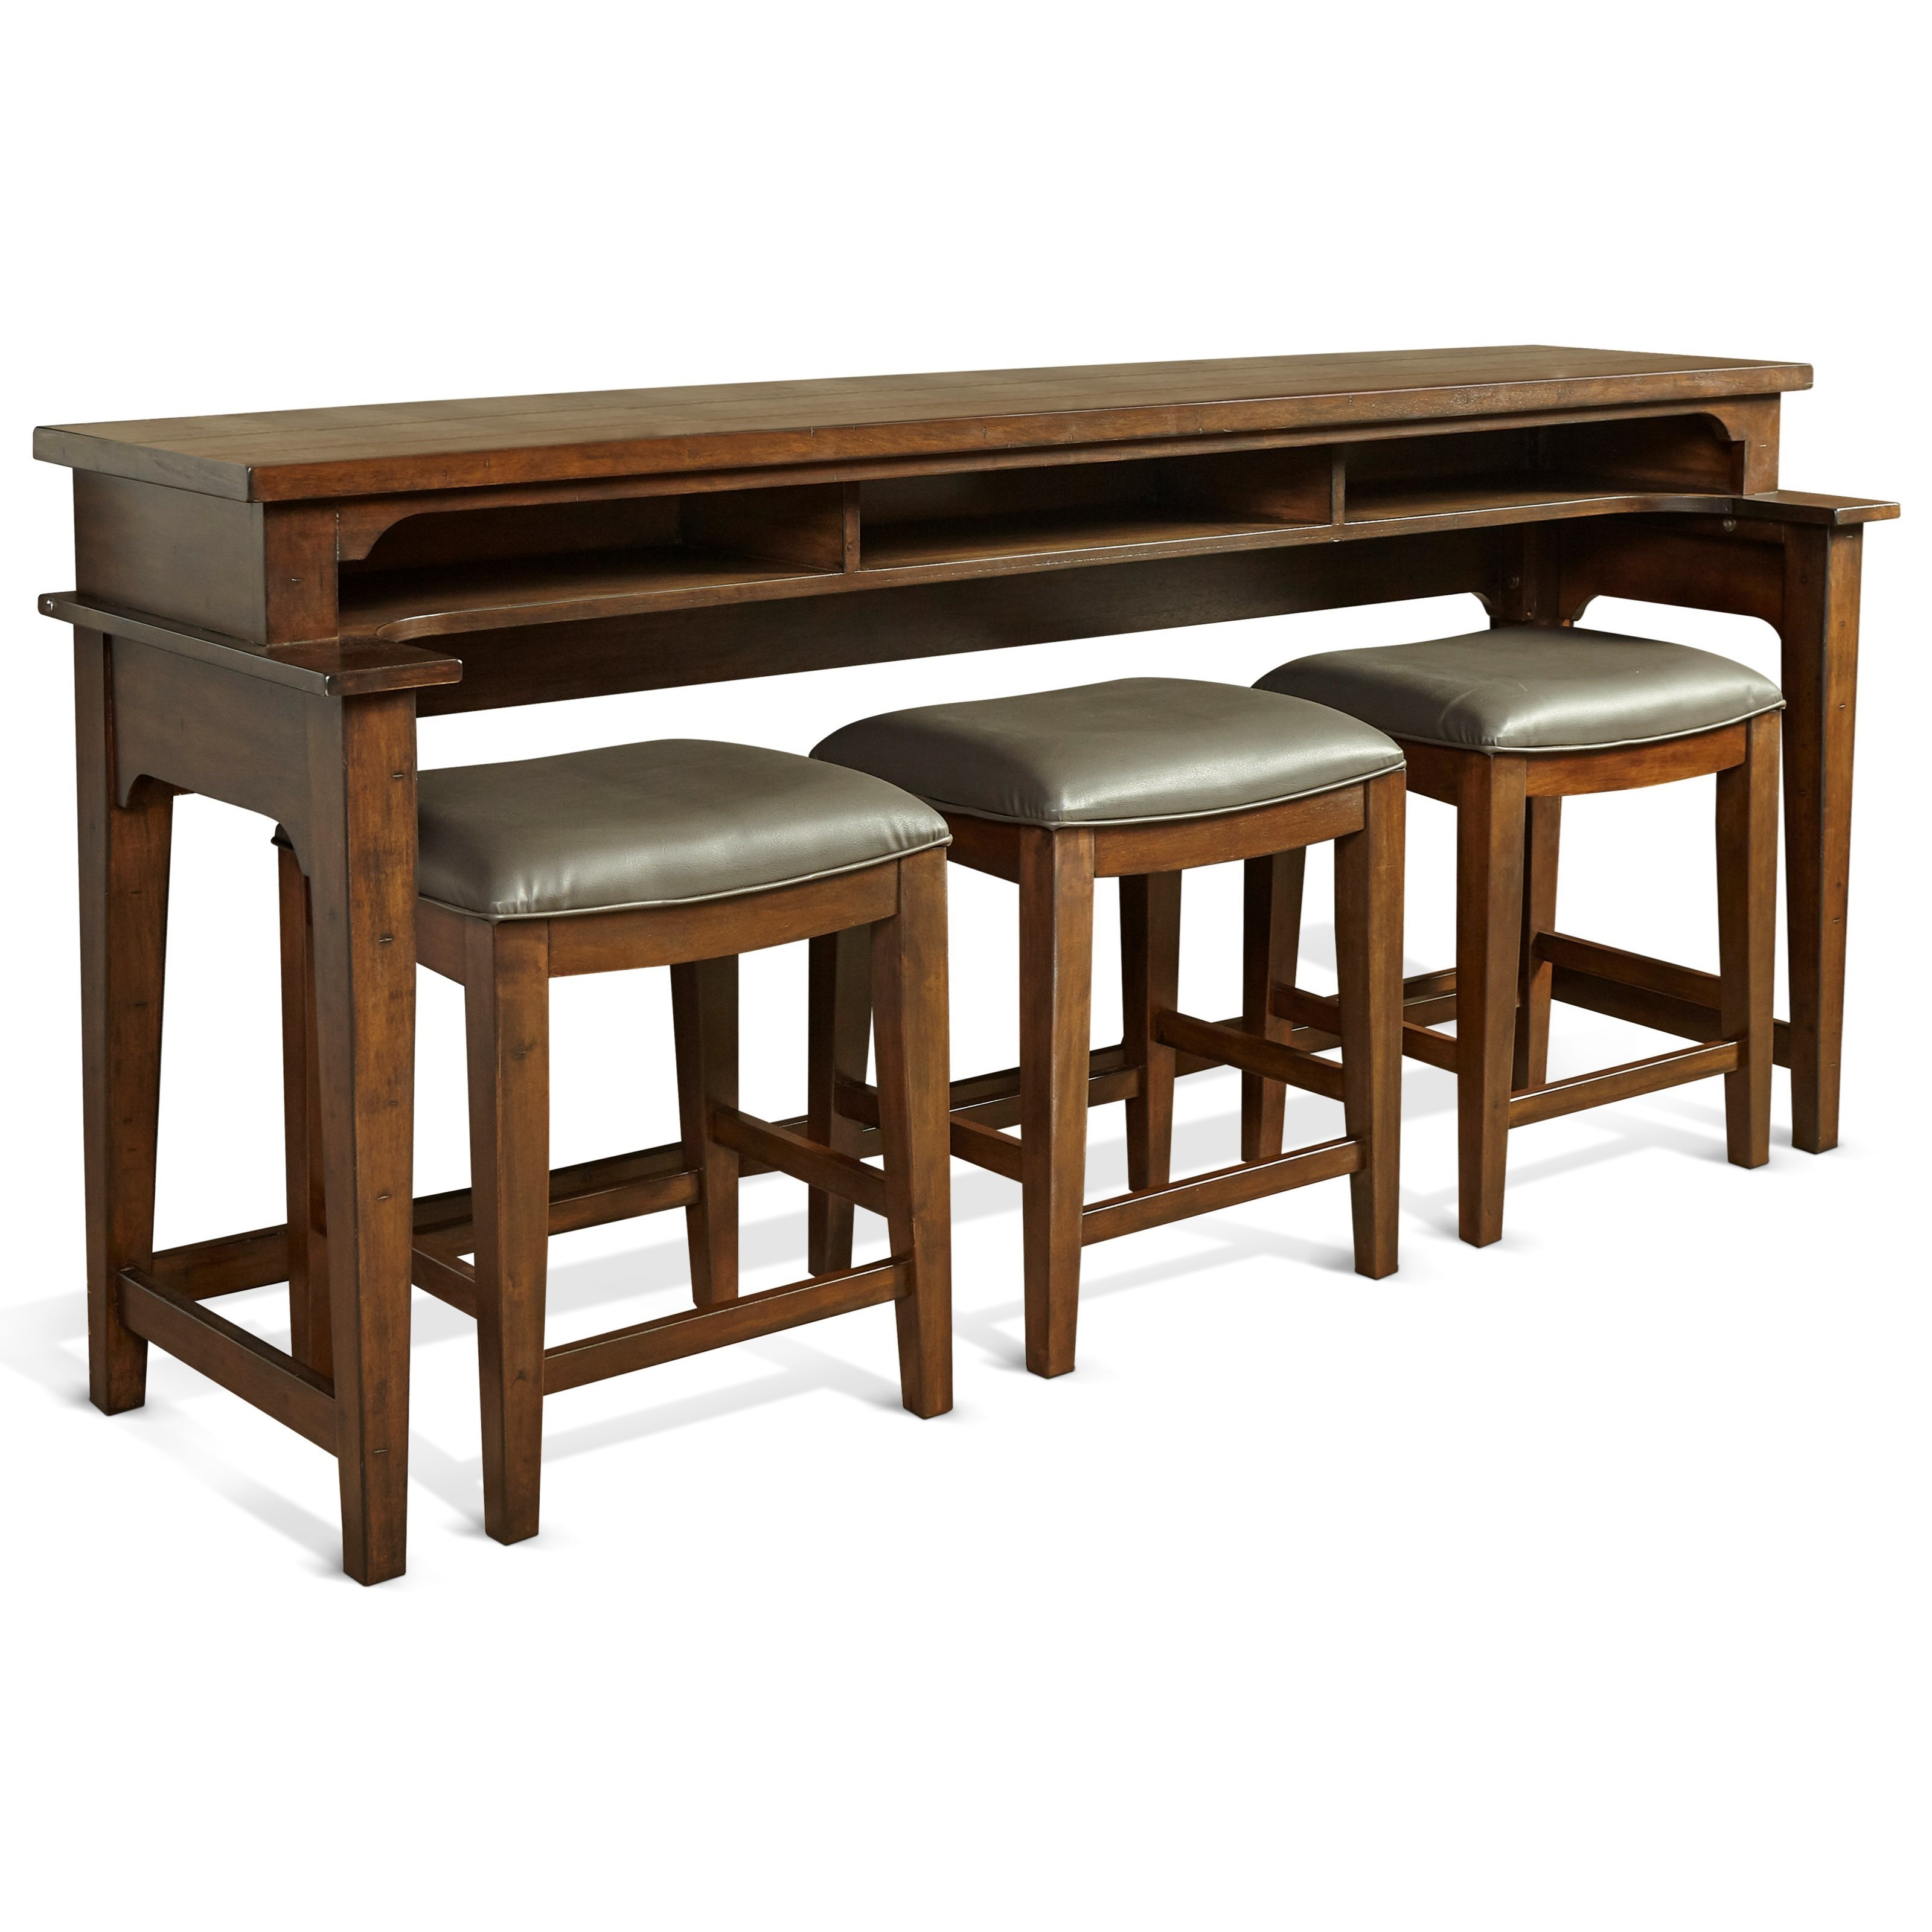 Merveilleux Richmond Console Bar Table With Shelf By Sunny Designs